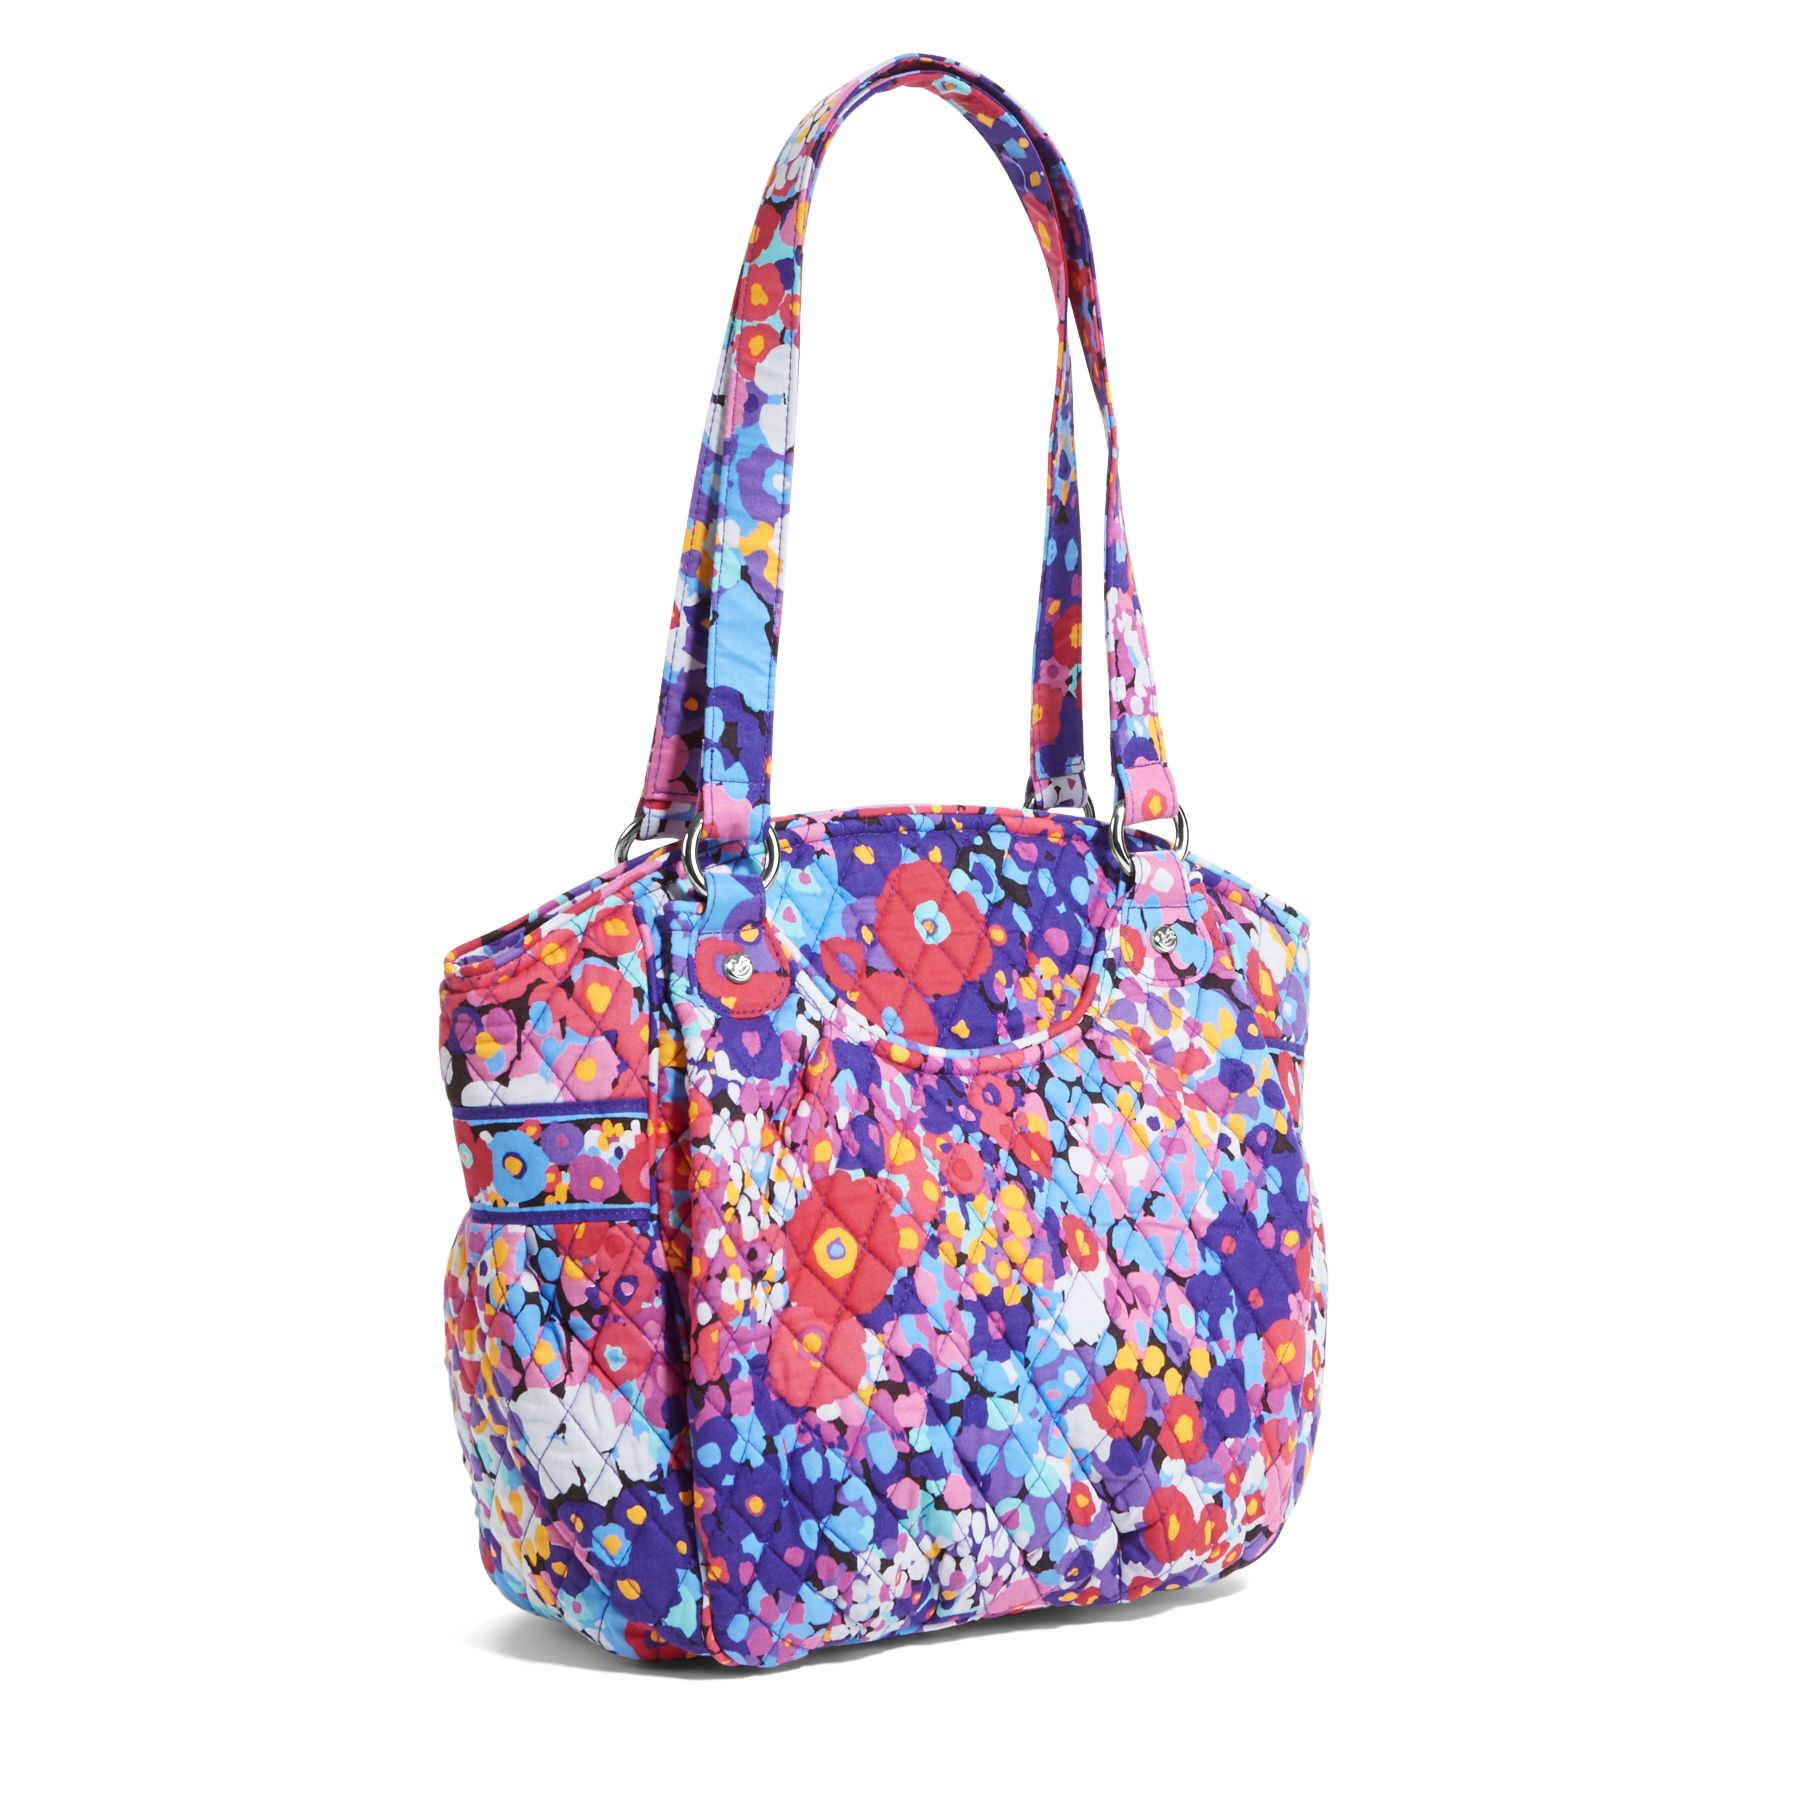 marketing analysis vera bradley Vera bradley is an easy to recognized brand that is known for their fun and boldly printed handbags based in fort wayne, indiana, vera bradley offers a variety of different style handbags, accessories and luggage they also carry colorful wallets, jewelry, umbrellas, stationery sets and much more.